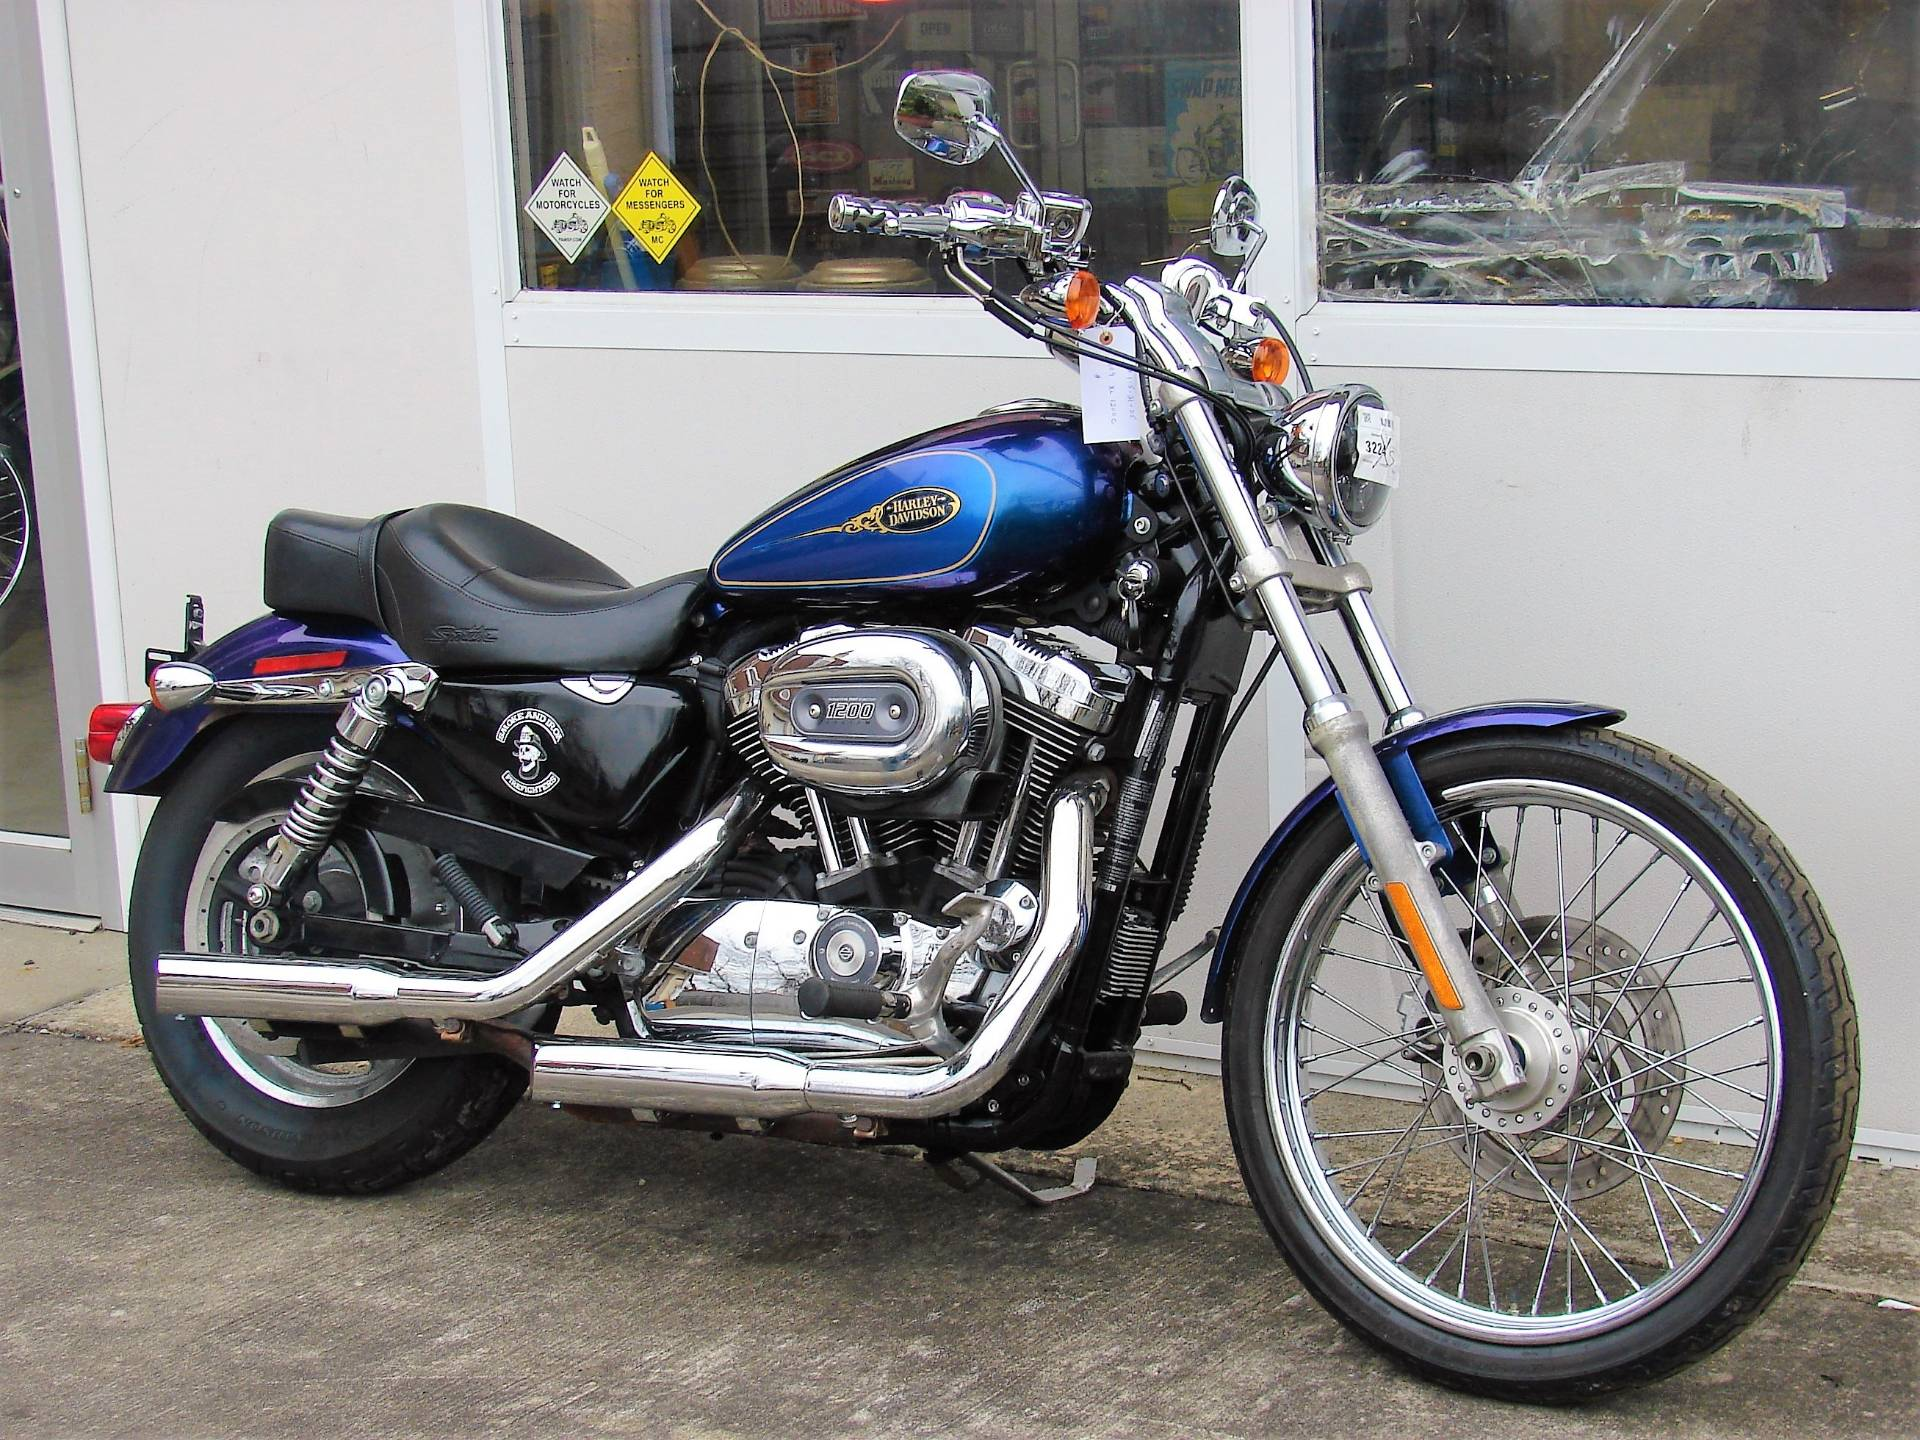 2009 Harley-Davidson XL 1200C Sportster in Williamstown, New Jersey - Photo 15